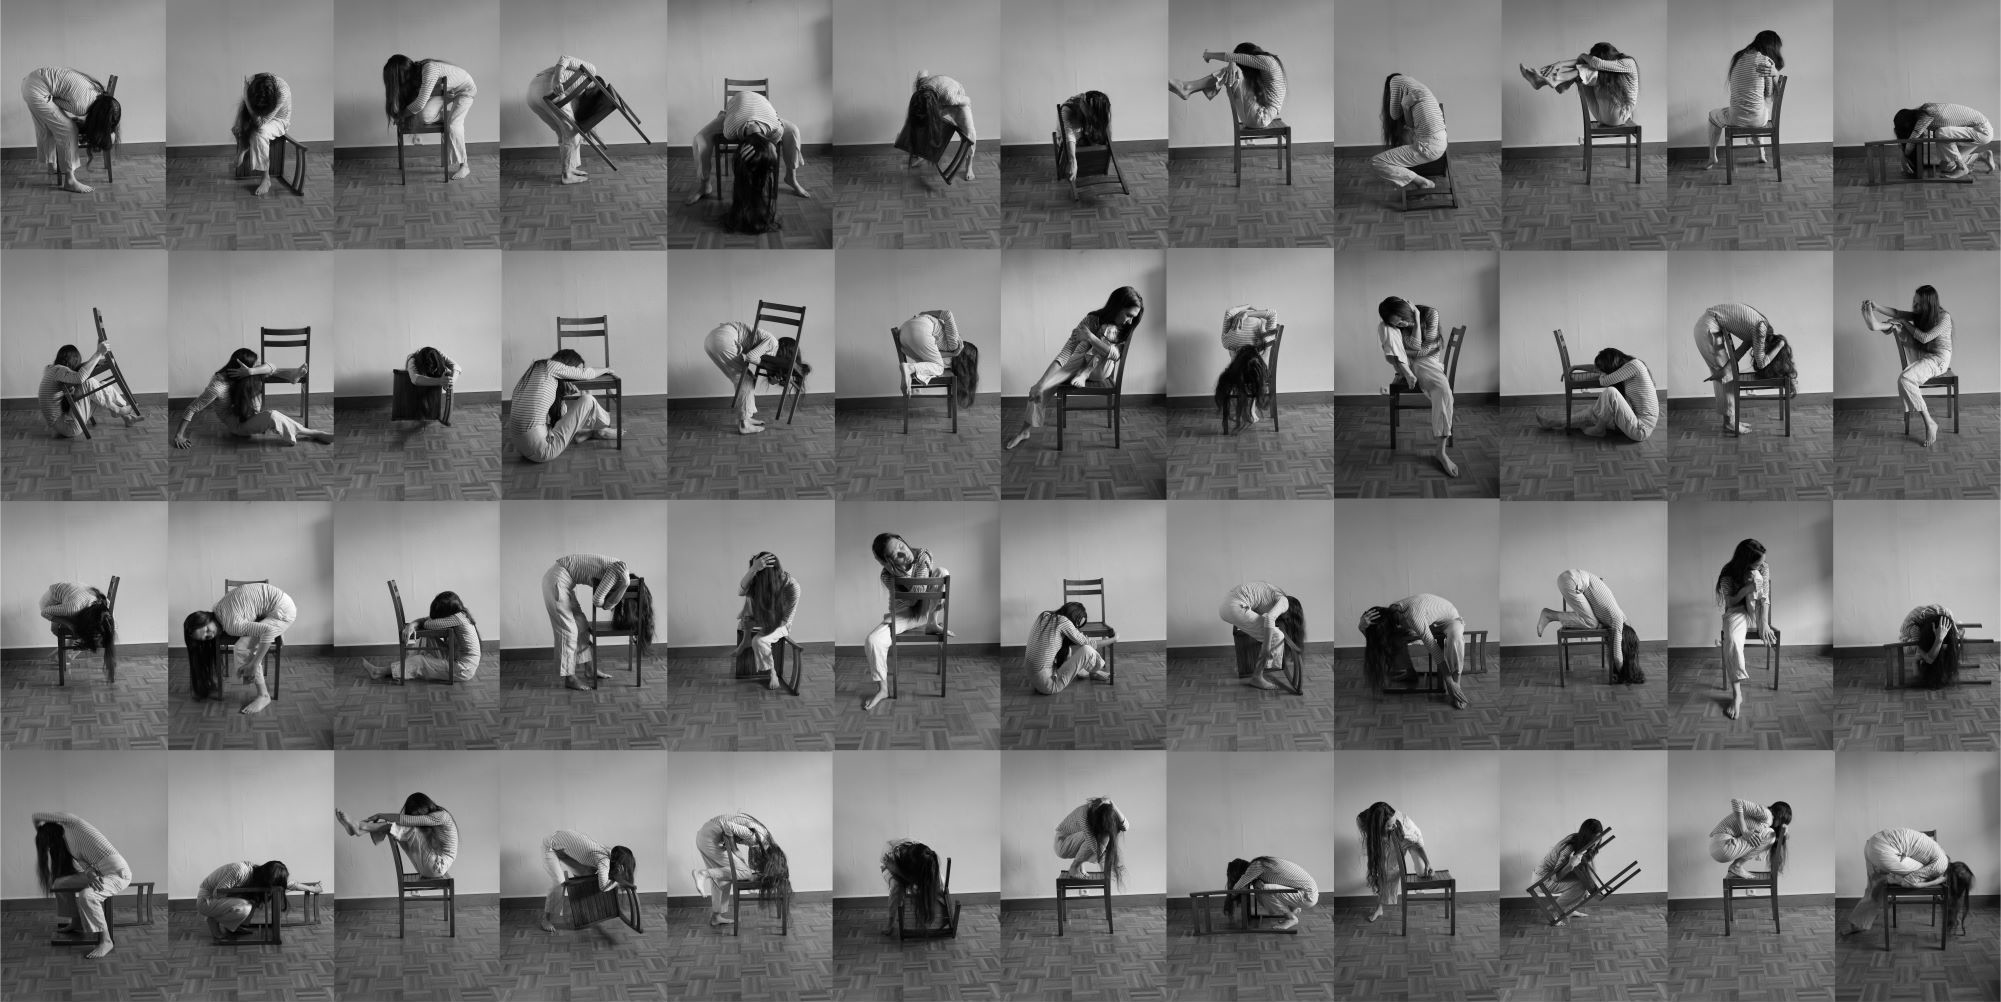 a thousand ways to embrace yourself - photography, sculpture, performance